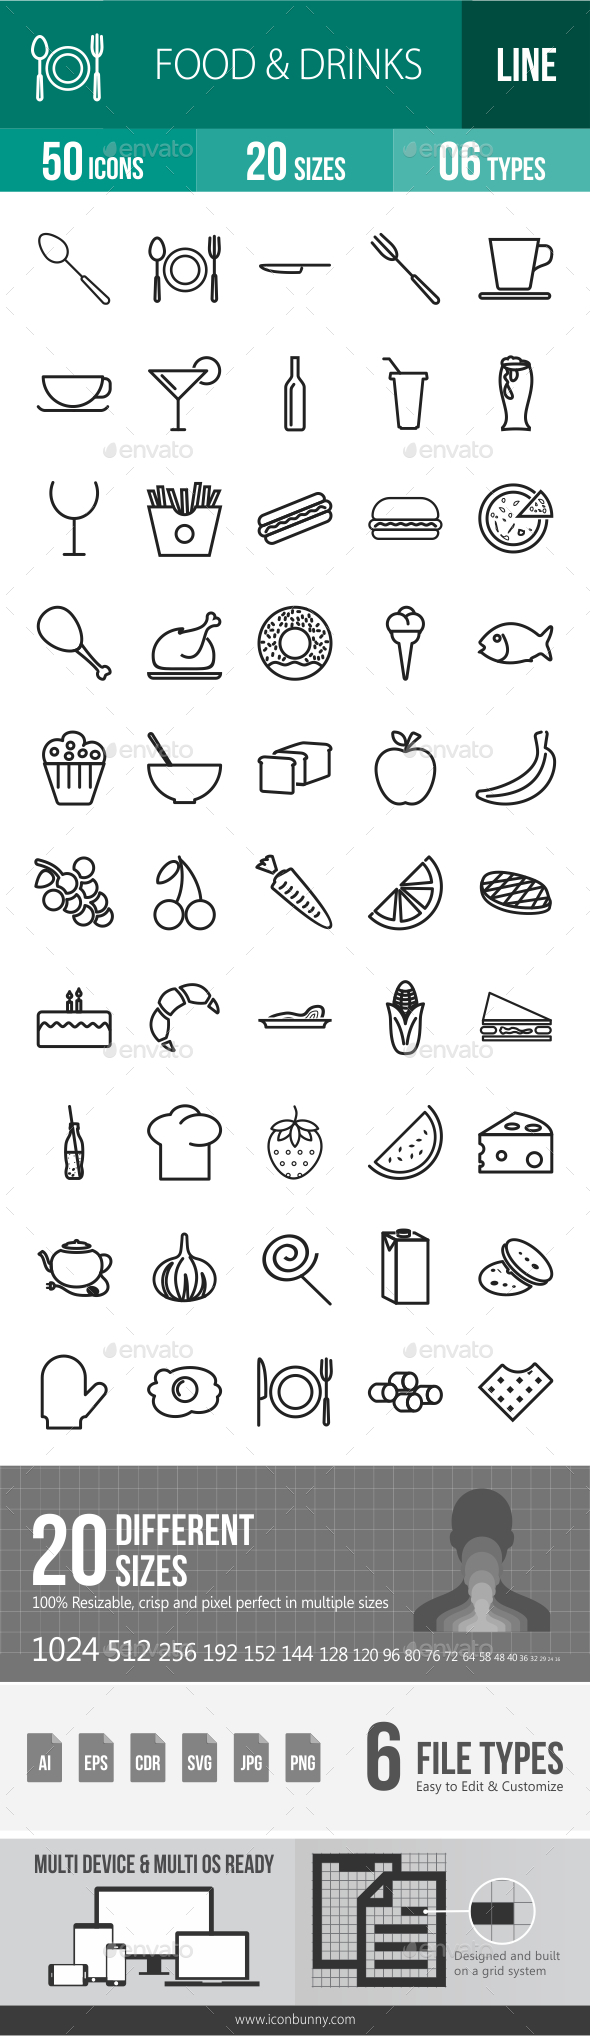 Food & Drinks Line Icons